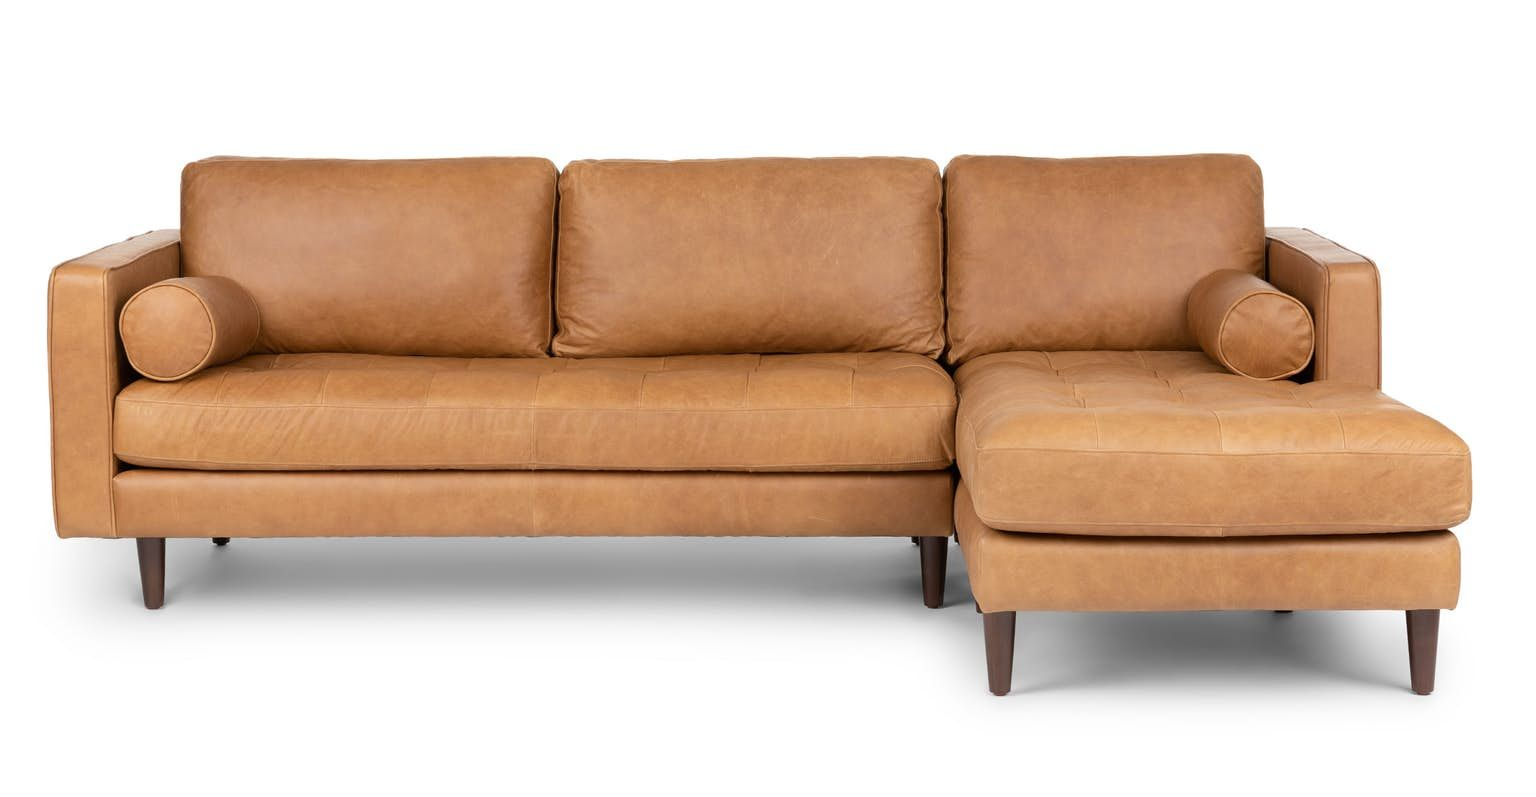 Sven Charme Tan Right Sectional Sofa Tan Leather Sectional Mid Century Modern Sectional Sofa Modern Sofa Couch